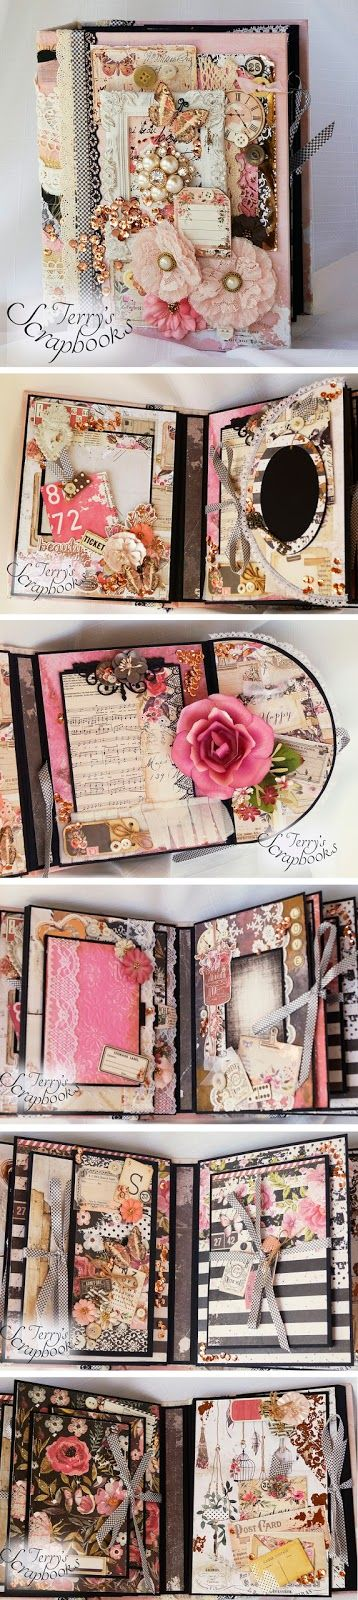 Terry's Scrapbooks: Prima Rossibelle Scrapbook Mini Photo Album Reneab... More